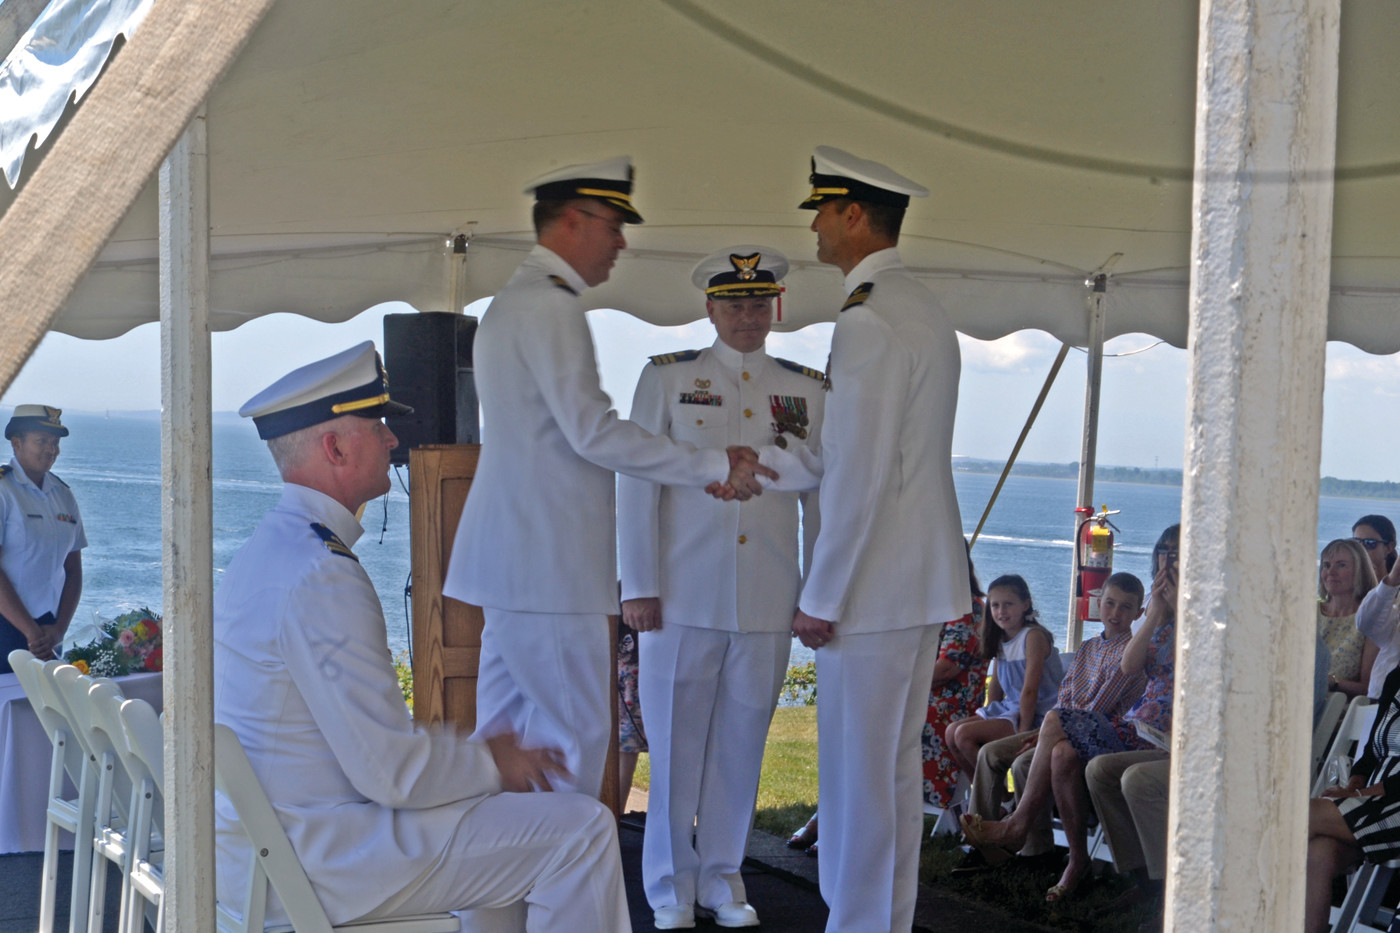 CHANGE OF ORDERS: Captain Andrew Brown watches on as new Commander of CEU Providence, Joshua Fant, receives his orders from Captain T. Wade Gesele, Commander of the Shore Infrastructure Logistics Center for the U.S. Coast Guard.